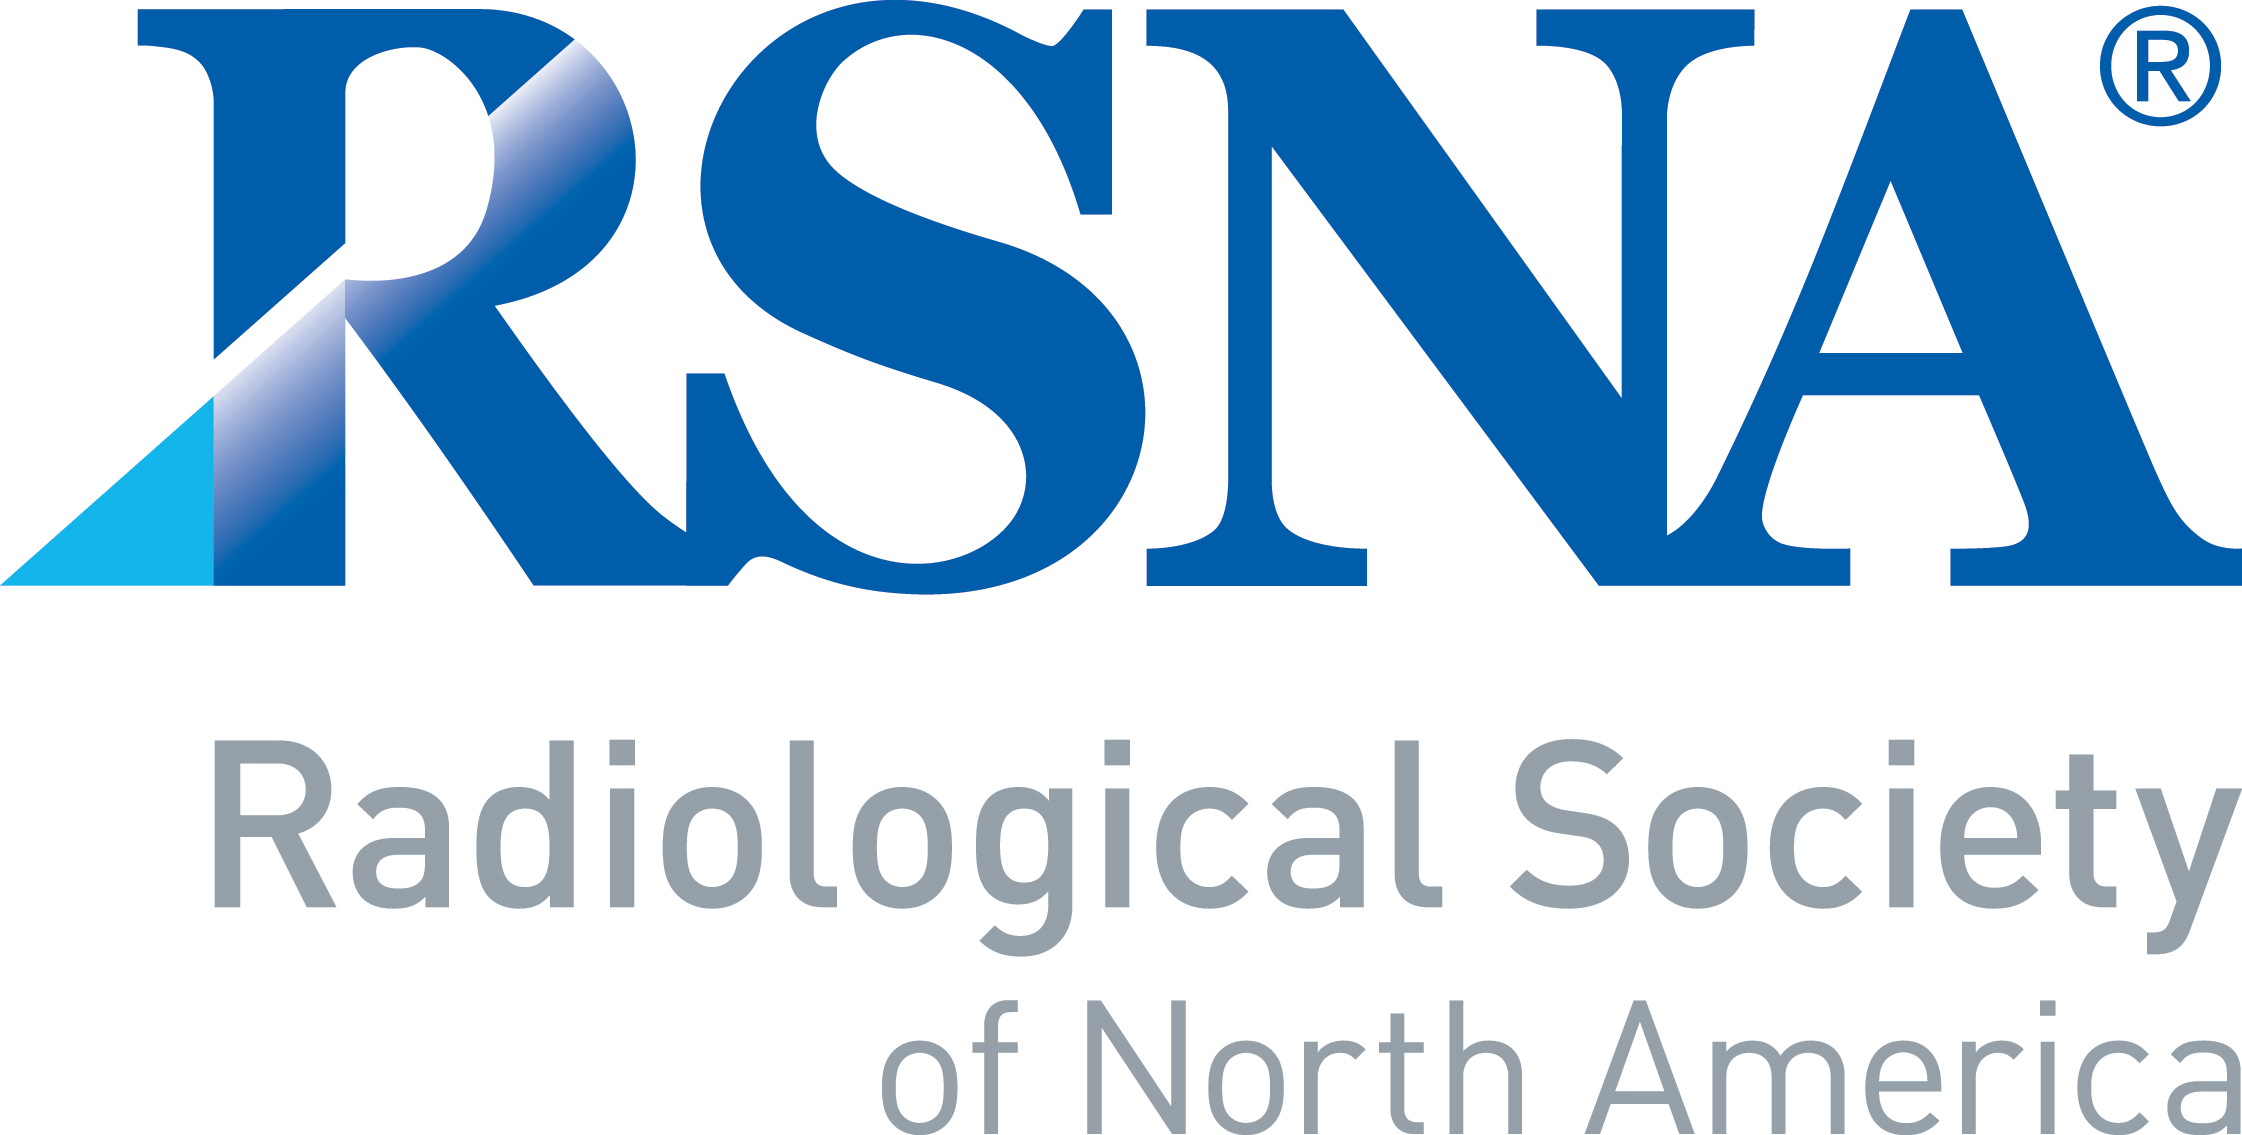 Radiological Society Of North America Trade Show